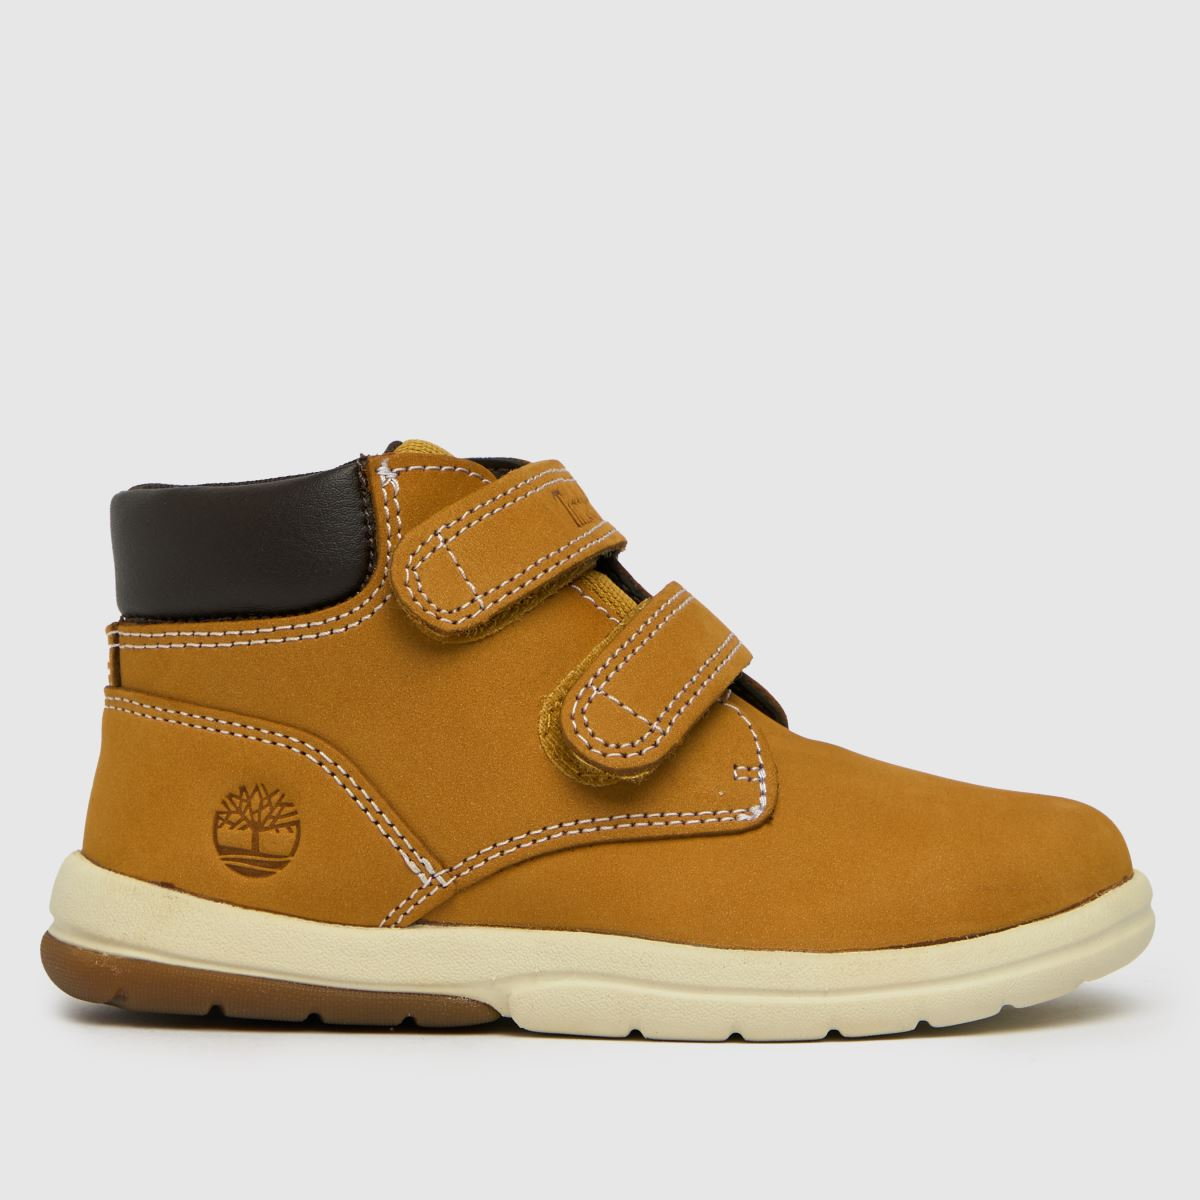 Timberland Natural Toddle Tracks Boots Toddler